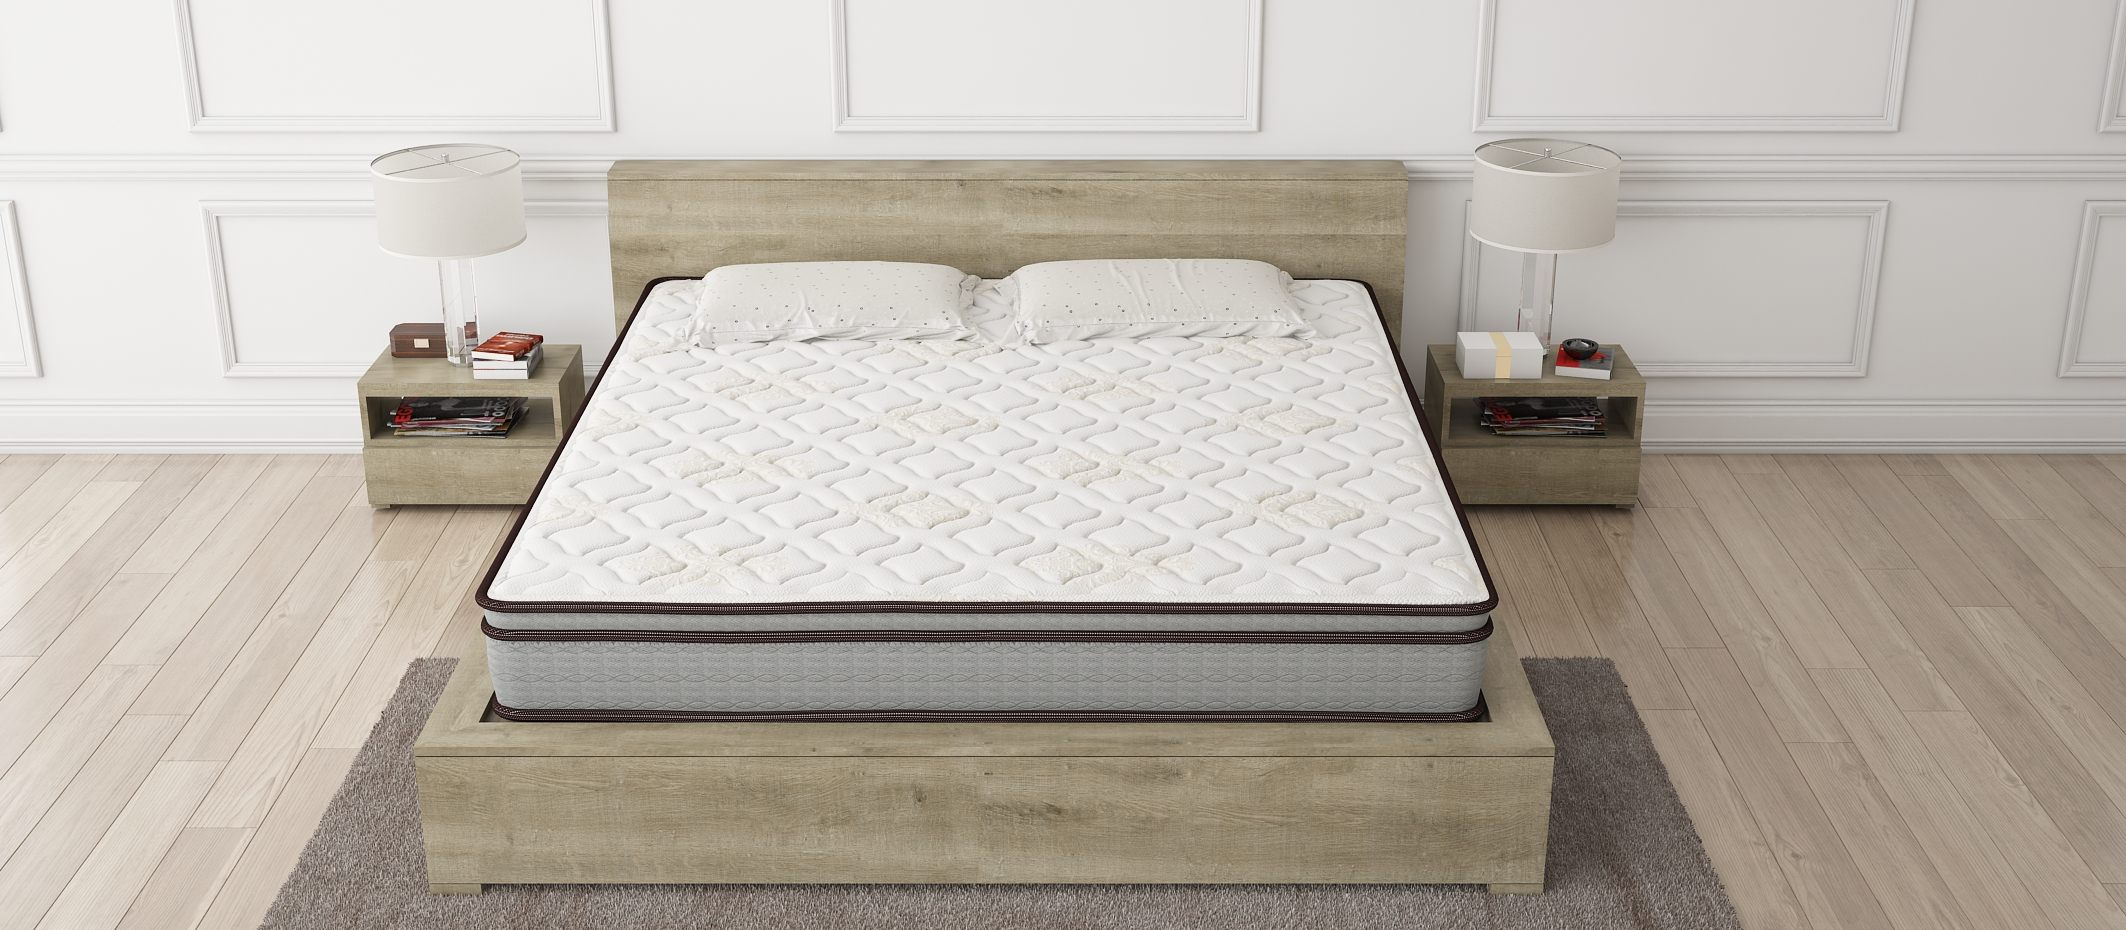 firm bedroom new and mattress colors elegant furniture plano with banner of home design ideas oak